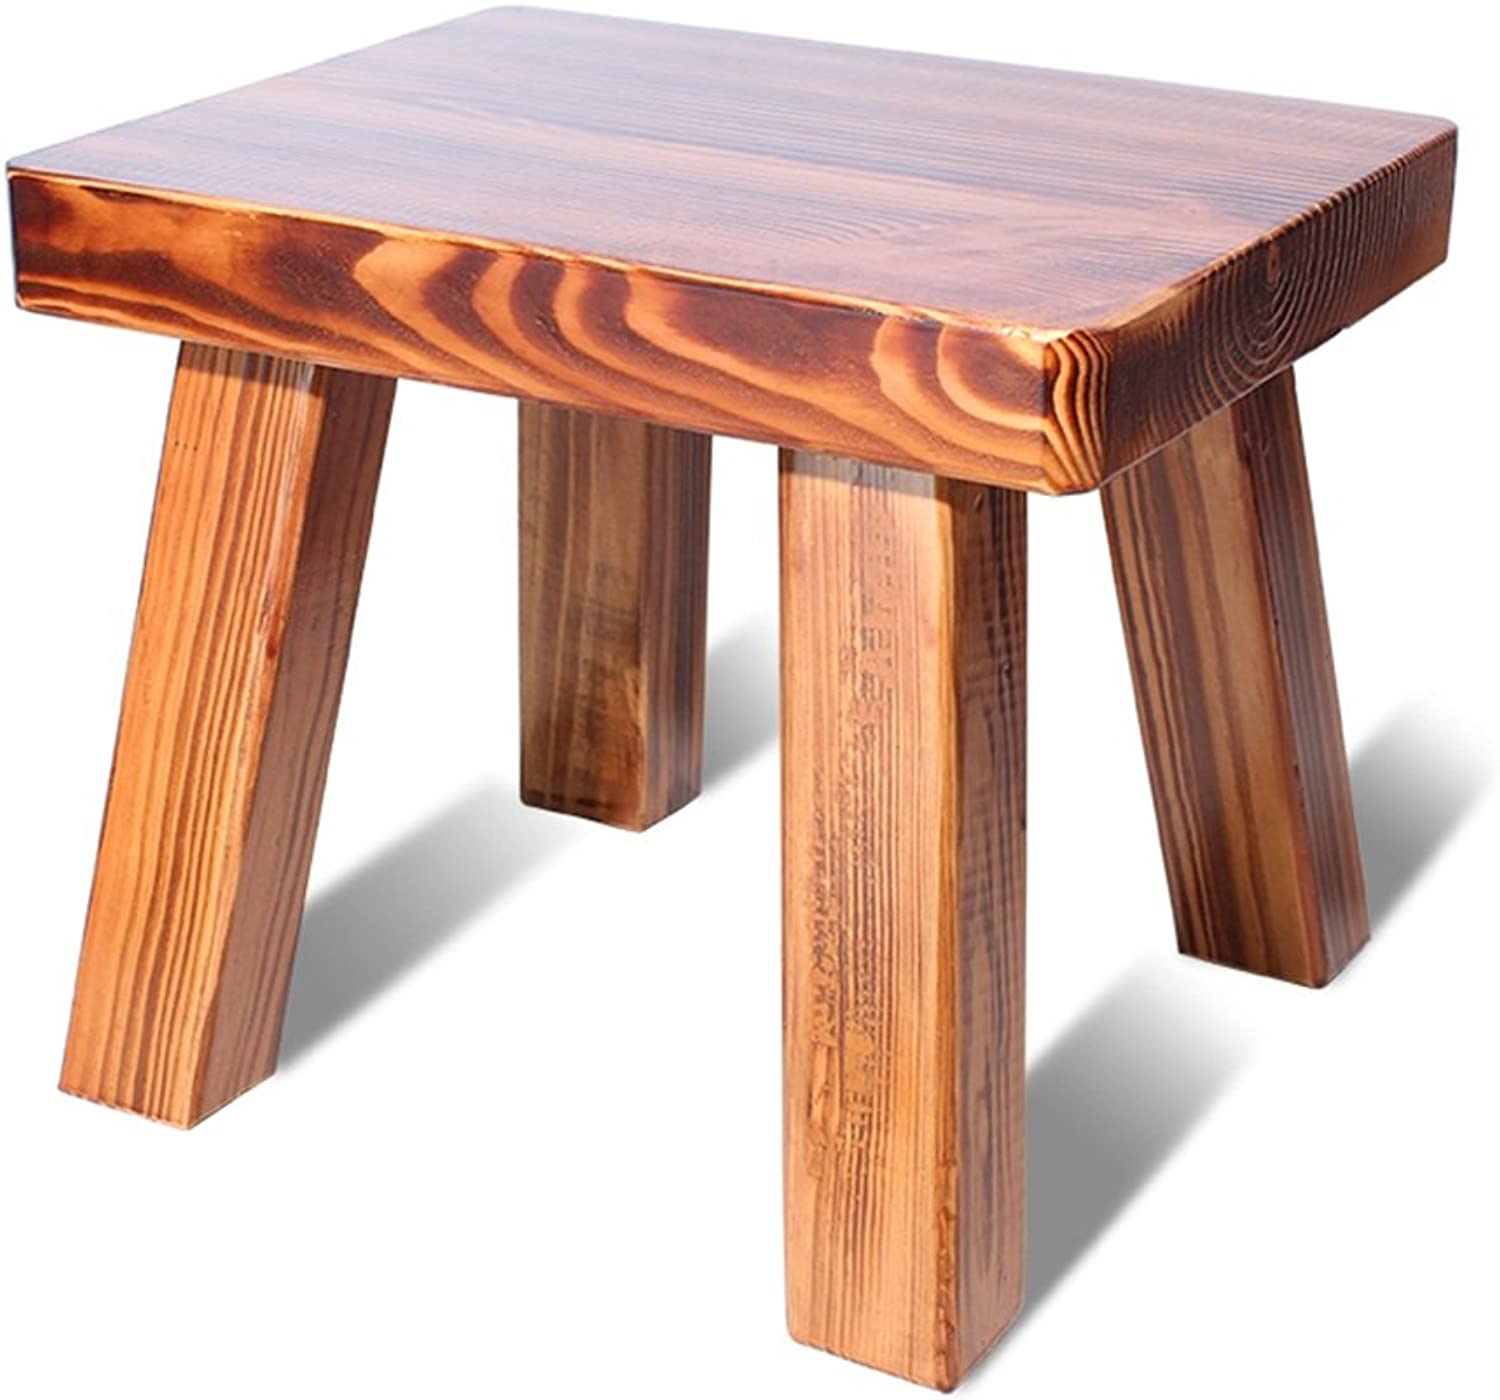 Home stool   simple and fashionable small stool   solid wood shoes stool   adult small stool ( color   A )